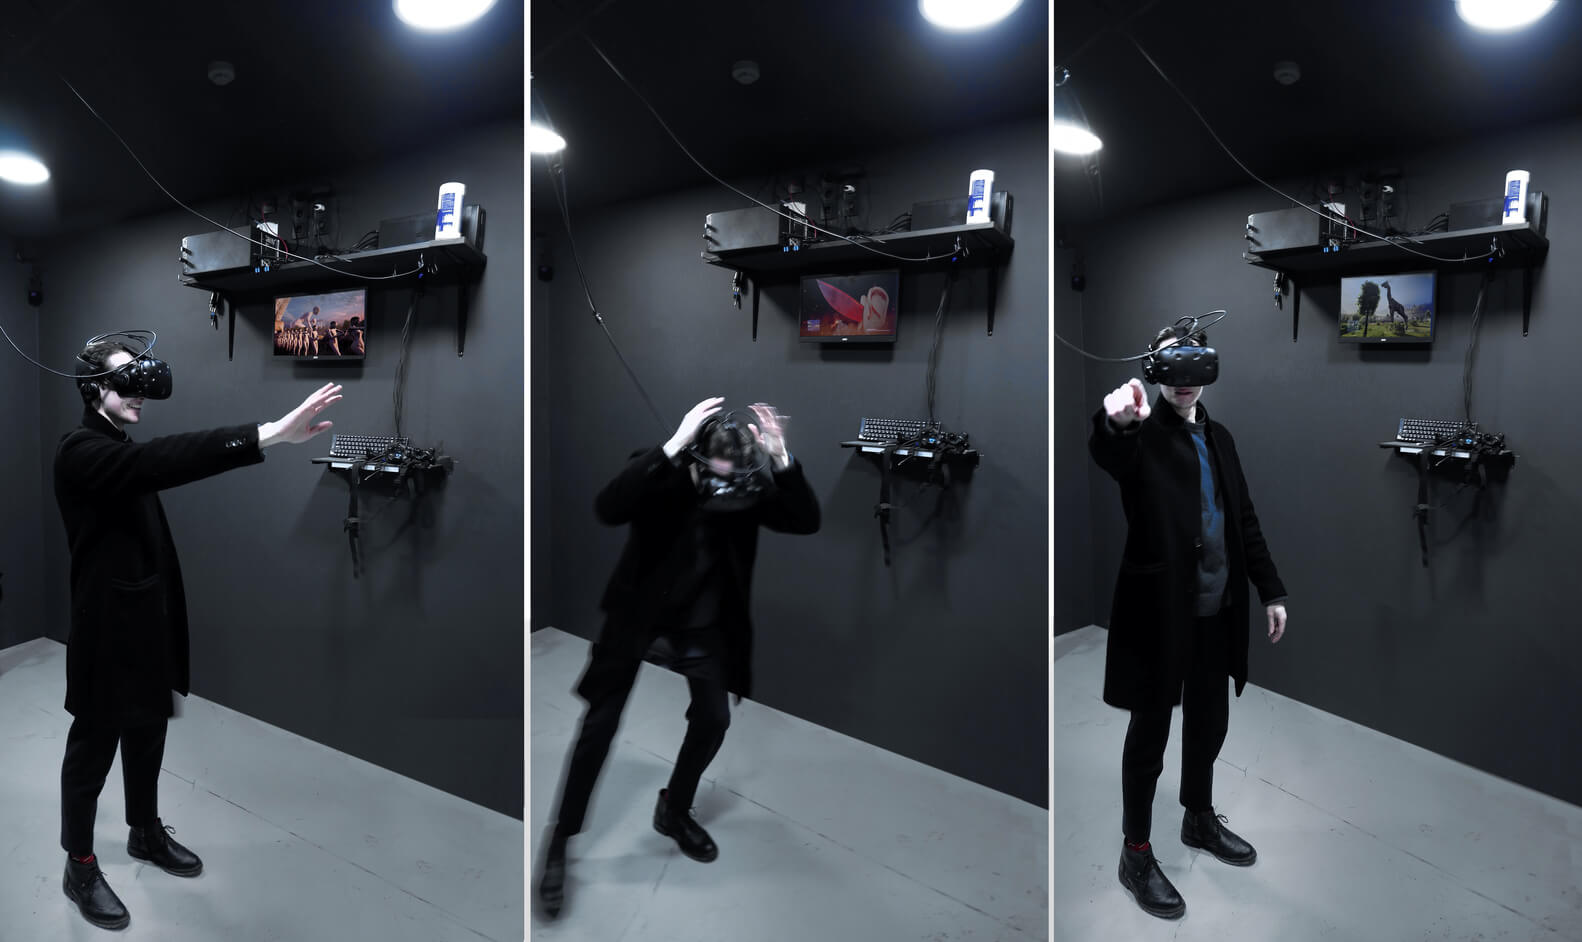 the visitor experiencing VR